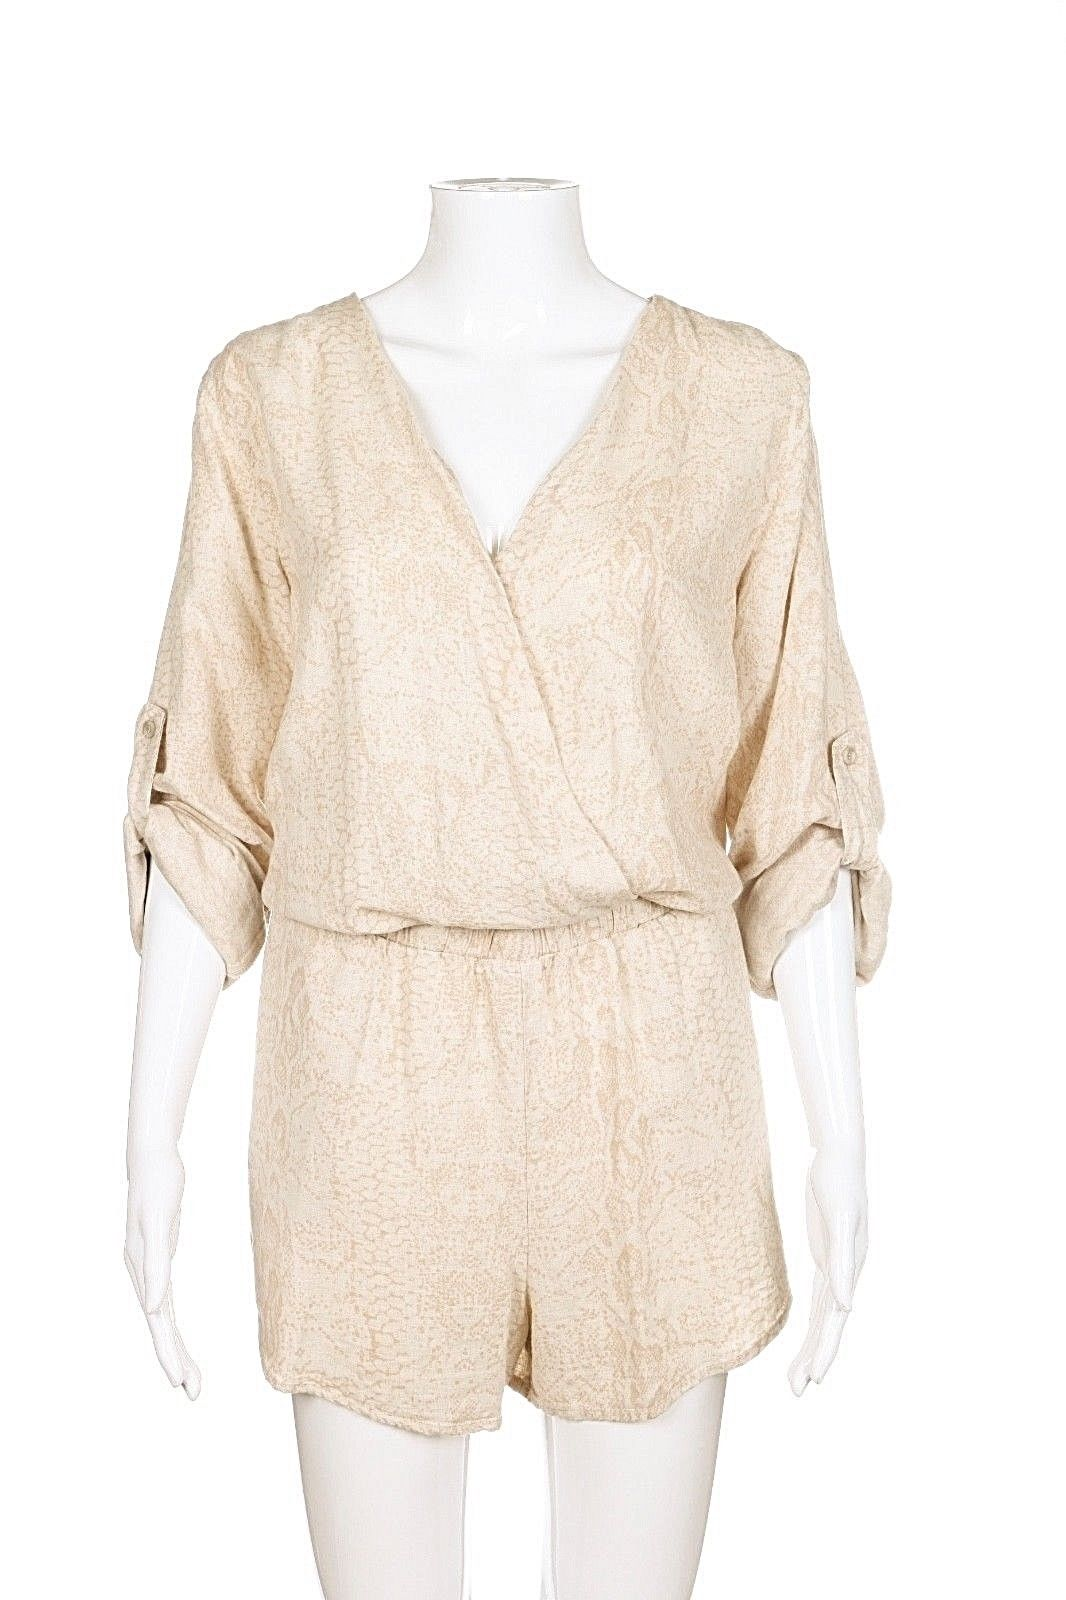 style-hunting ANTHROPOLOGIE CLOTH & STONE Romper Medium Beige Stone Animal Print (New w/ Tags)